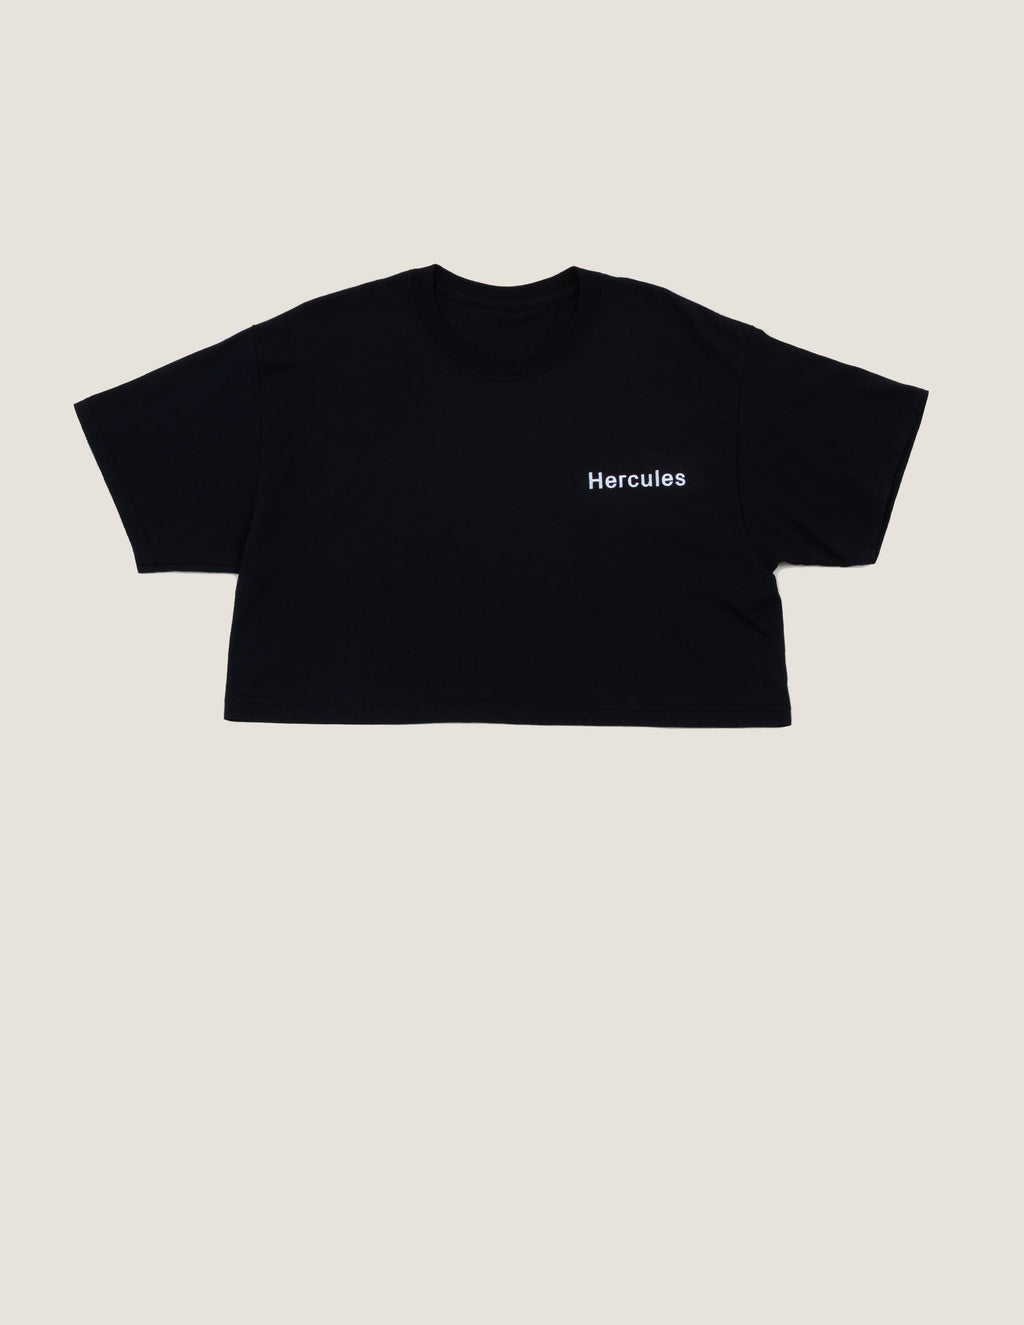 Hercules Logo Crop Top White Embroidery